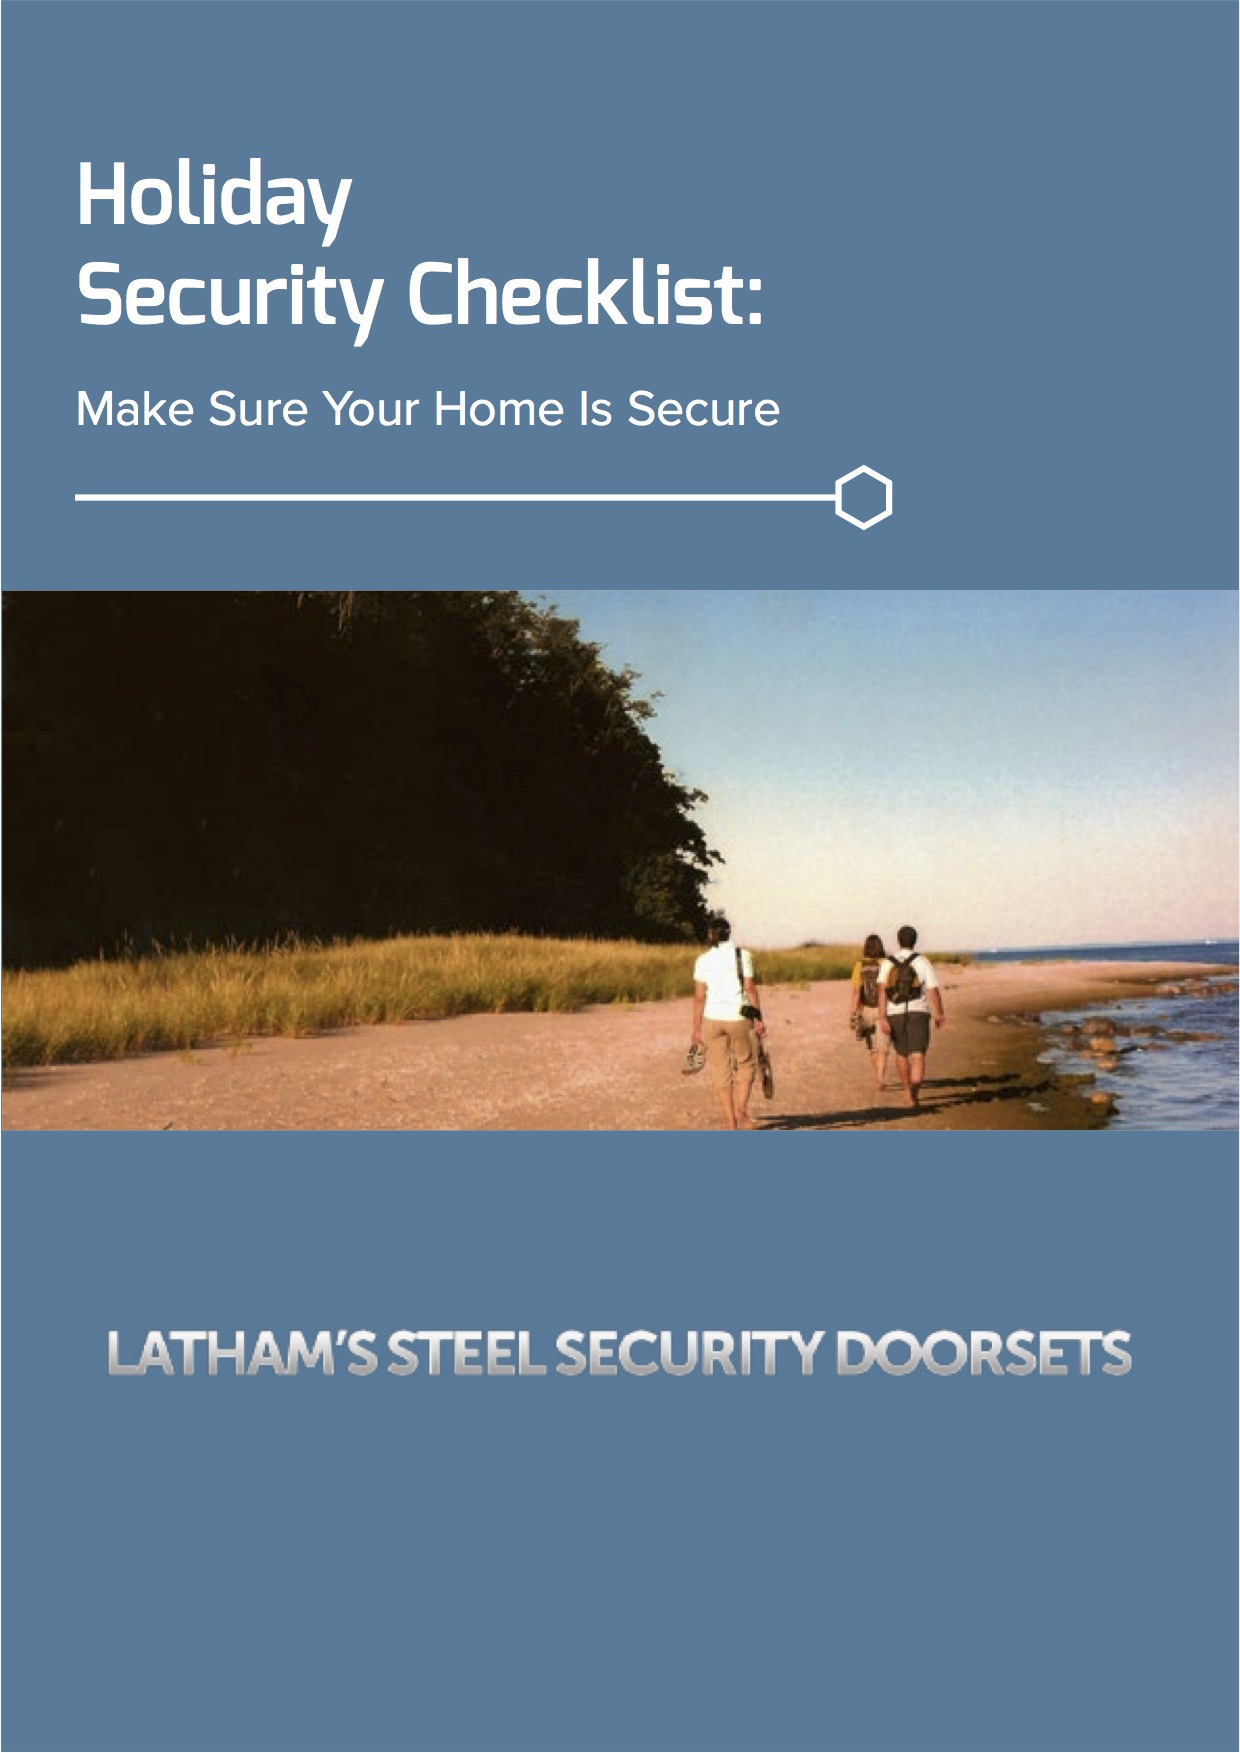 Holiday security checklist cover image with picture of people walking along a coast line